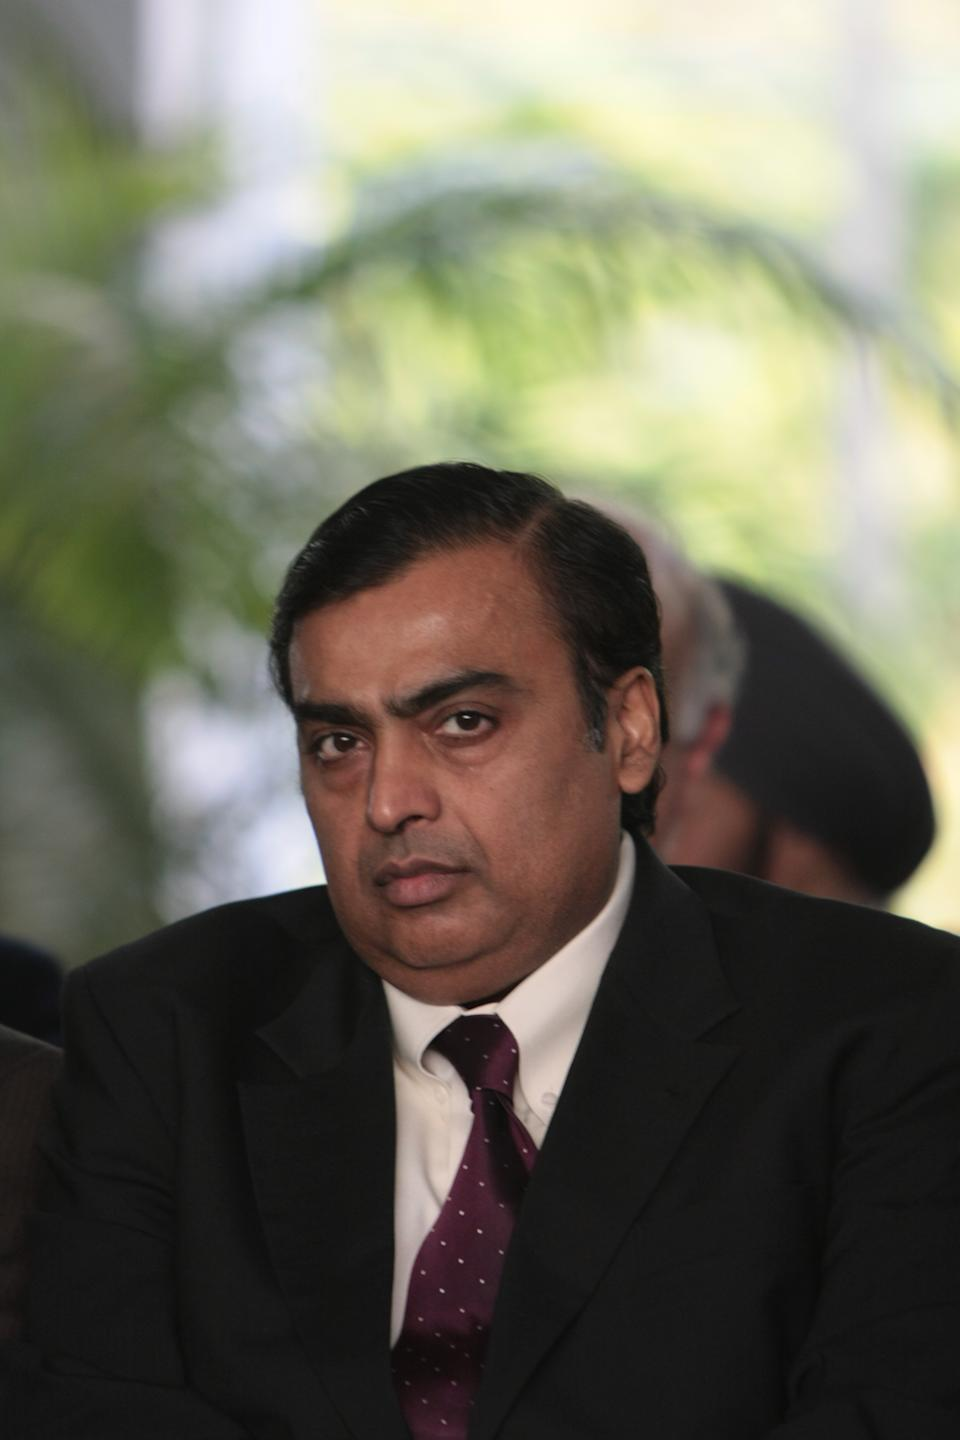 Indian billionaire business magnate Mukesh Ambani, along with his brother Anil Ambani, inherited the Reliance Group conglomerate from the founder, his father Dhirajlal Hirachand Ambani. Mukesh took the reins of the company with his brother Anil in 1985, and the brothers inherited the business in 2002 when their father died. But the group was split in 2005 after the siblings fell out. On 6 July 2002, Mukesh's father died after suffering a second stroke, which elevated tensions between the brothers as Dhirubhai had not left a will for the distribution of the empire in 2004. Their mother intervened to stop the feud, splitting the company into two, Ambani receiving control of Reliance Industries Limited and Indian Petrochemicals Corporation Limited in 2005 and the rest is history with Mukesh growing his business manifold. He is currently the richest man in Asia with a net worth of US$80.5 billion and as of 24 July 2020 he is listed on Forbes as the 5th richest person in the world.